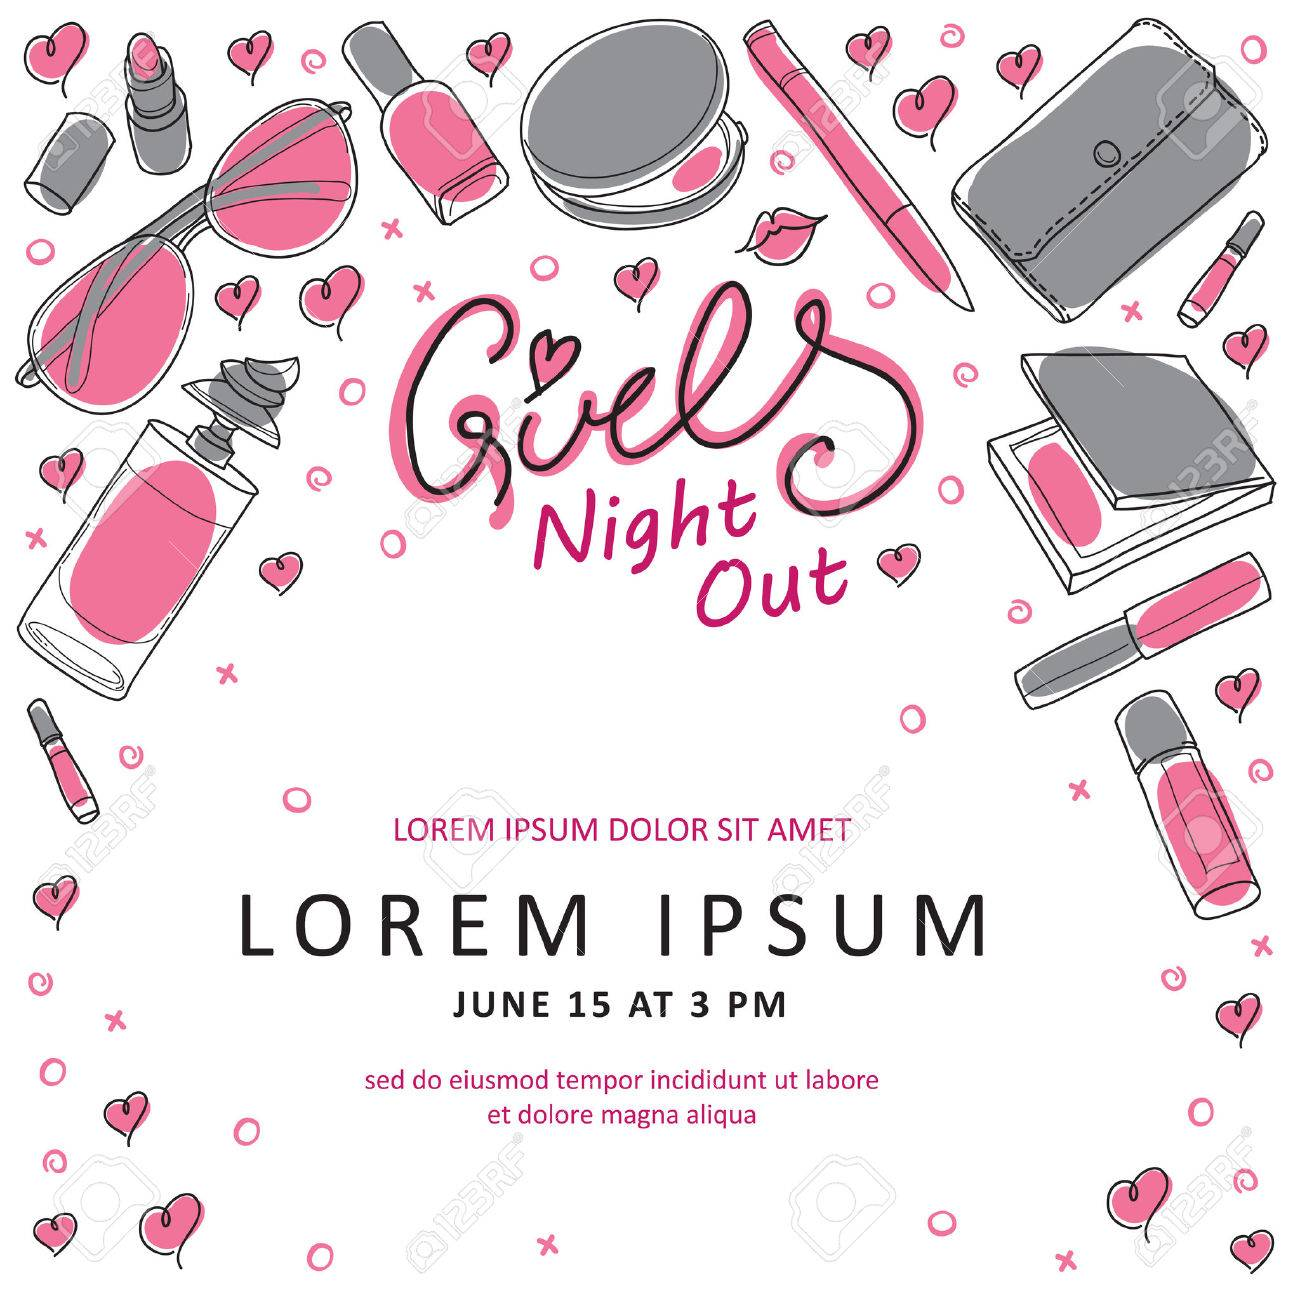 Invitation Cards For Ladies Party. Girls Night Out Party Invitation Card Design in Vector  You can design invitation cards In Can